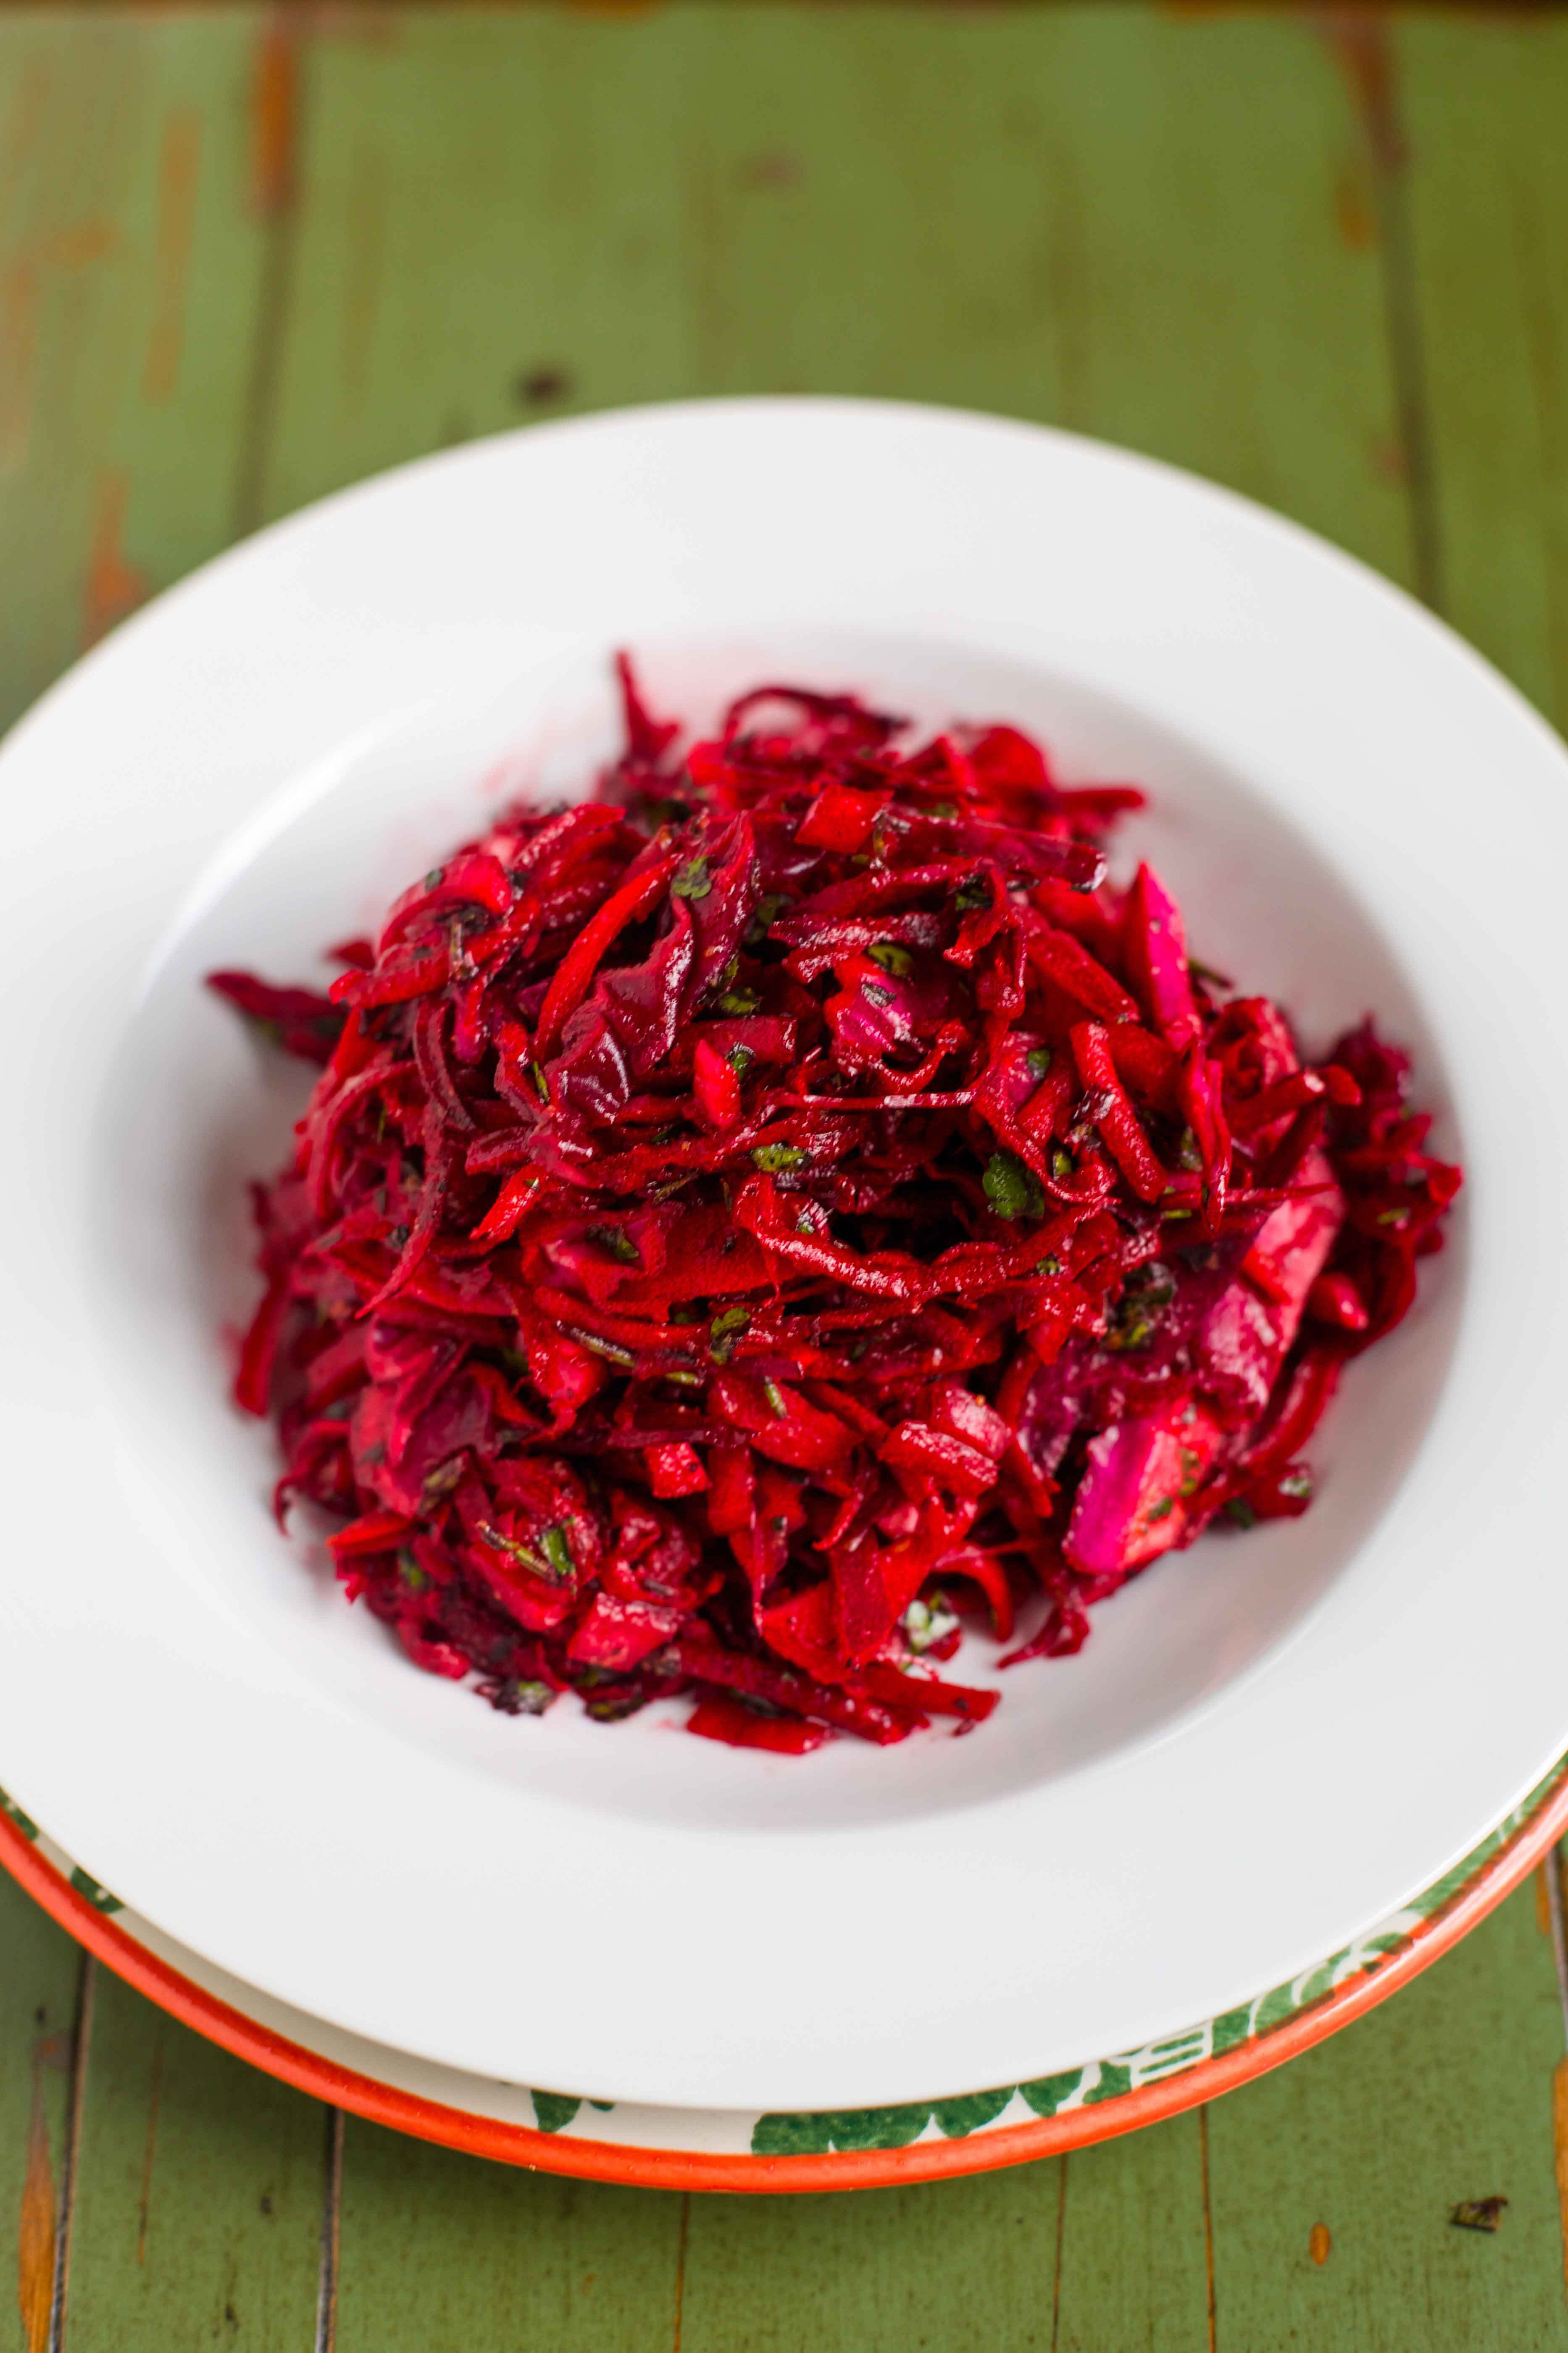 Pickled cabbage with beets: cooking recipes 65